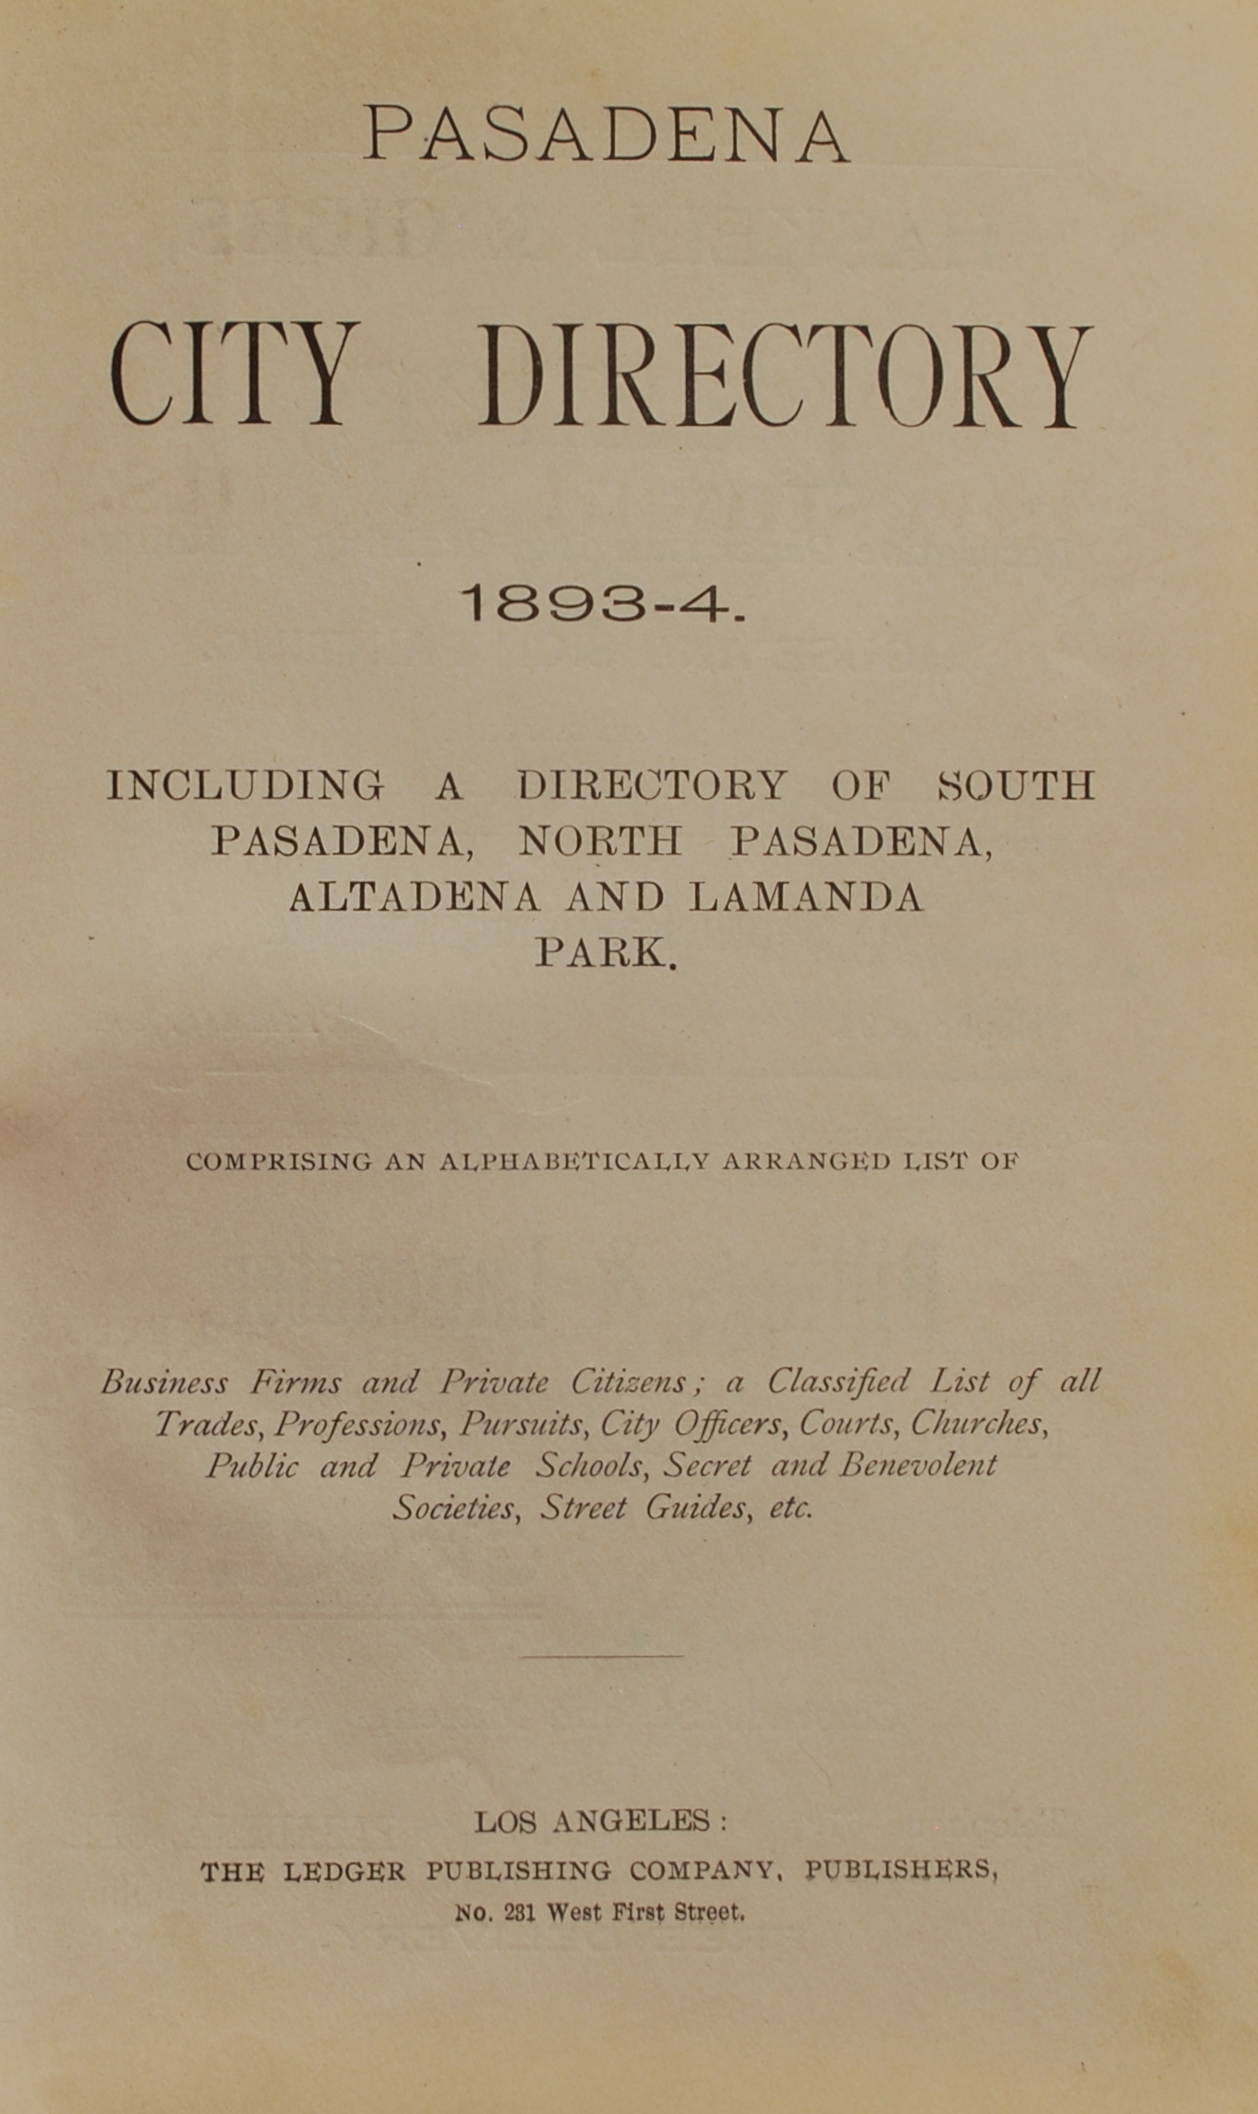 Image for Pasadena City Directory, 1893-4.  Including a Directory of South Pasadena, North Pasadena, Altadena and Lamanda Park.  Comprising an Alphabetically Arranged List of Business Firms and Private Citizens; A Classified List of all Trades, Professions, Pursuits, City Officers, Courts, Churches, Public and Private Schools, Secret and Benevolent Societies, Street Guides, etc.